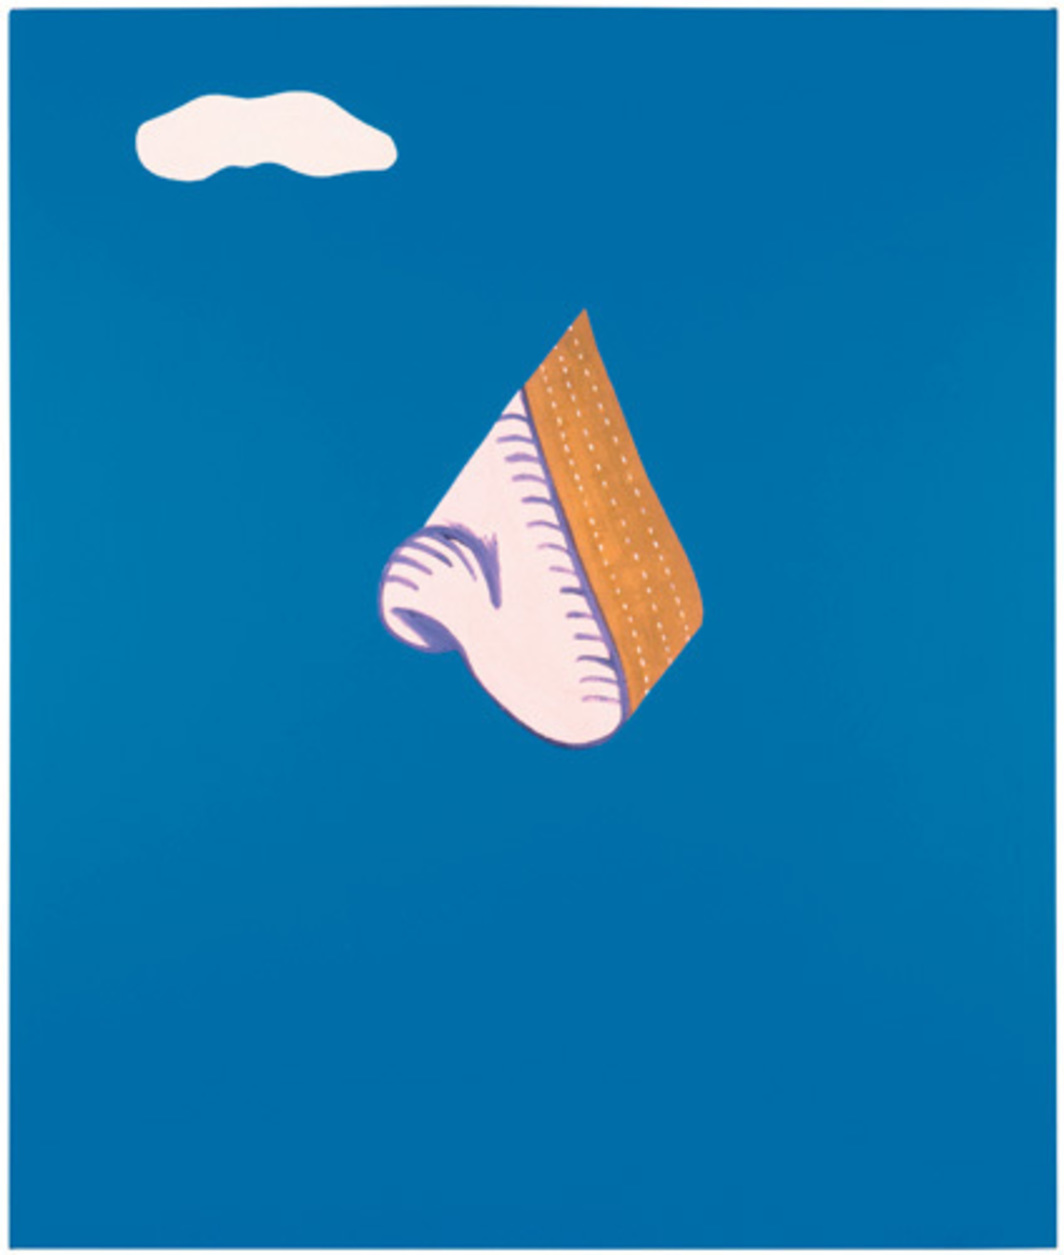 "John Baldessari, God Nose, 1965, oil on canvas, 68 x 57""."